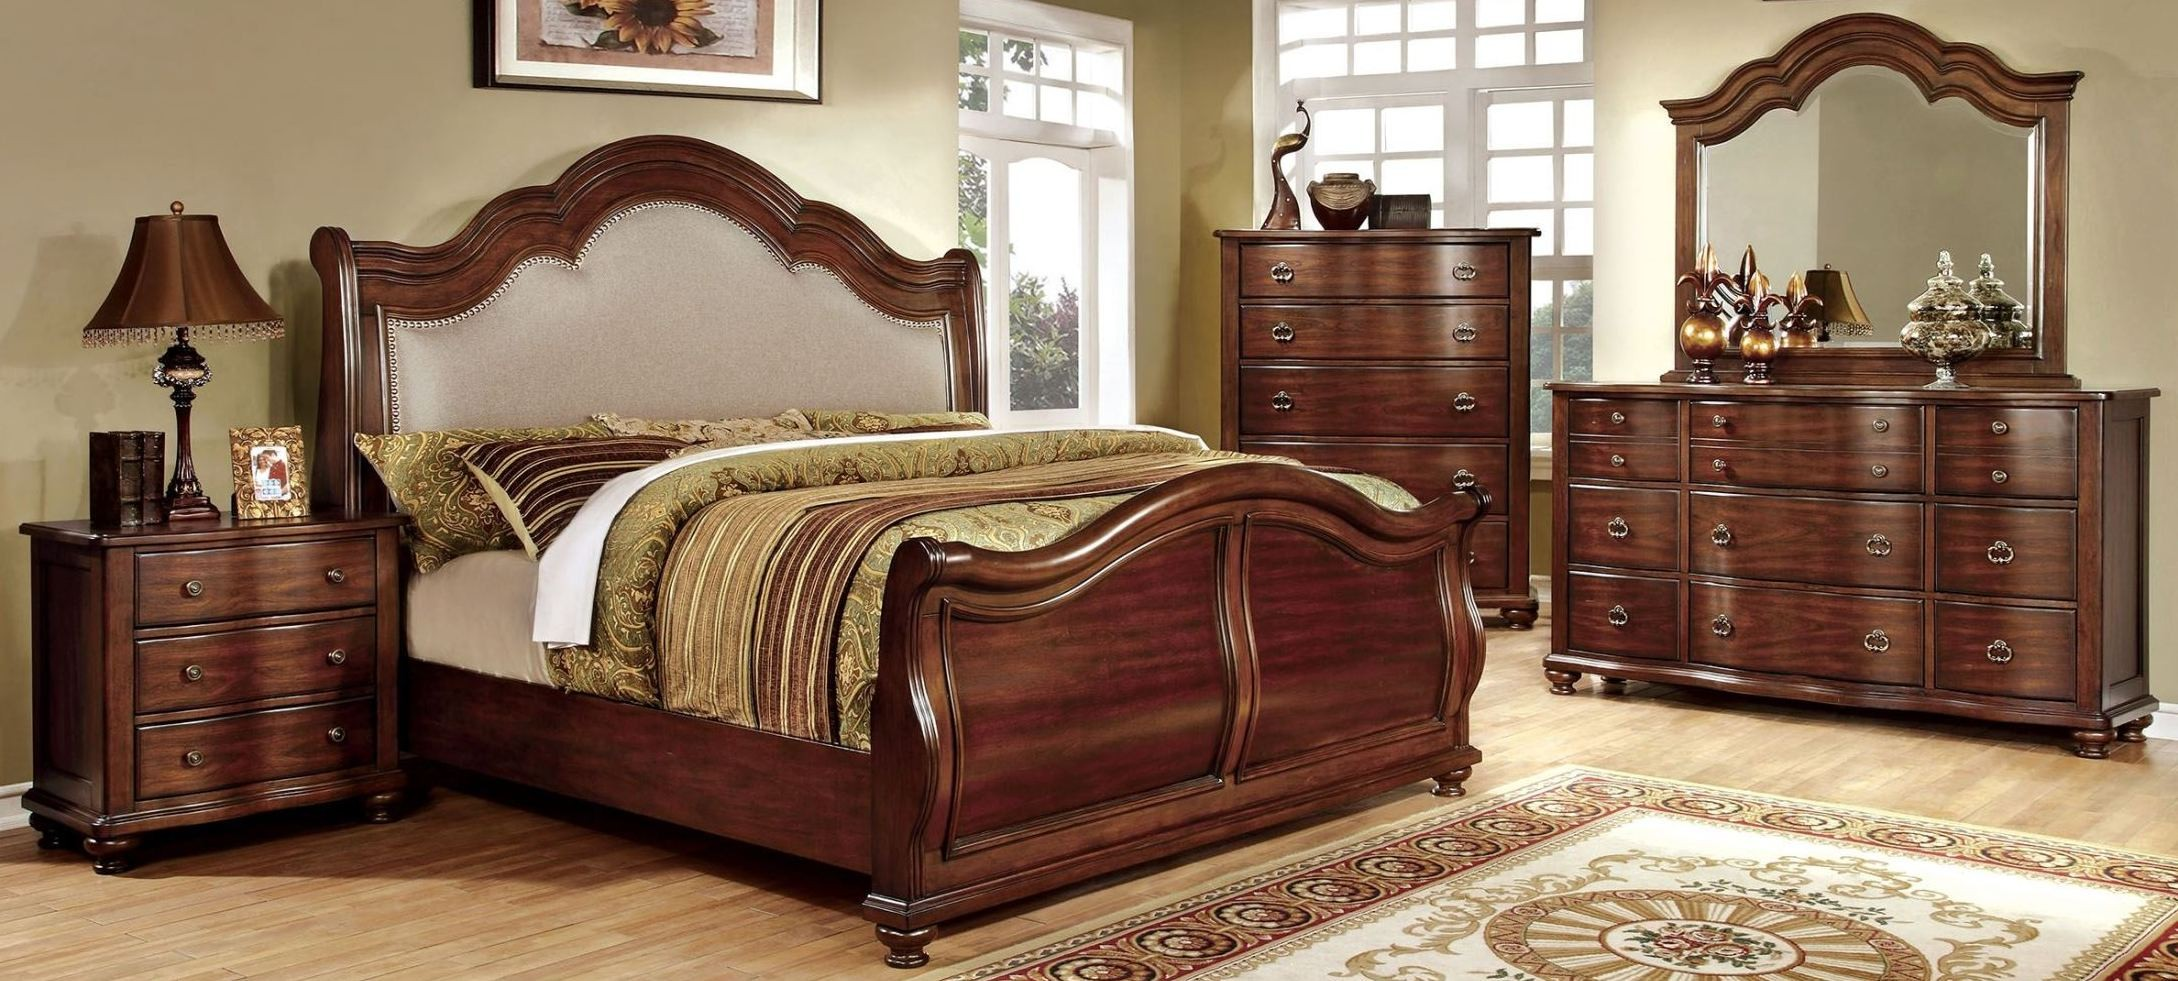 Bellavista Brown Cherry Sleigh Bedroom Set from Furniture of America CM7350H